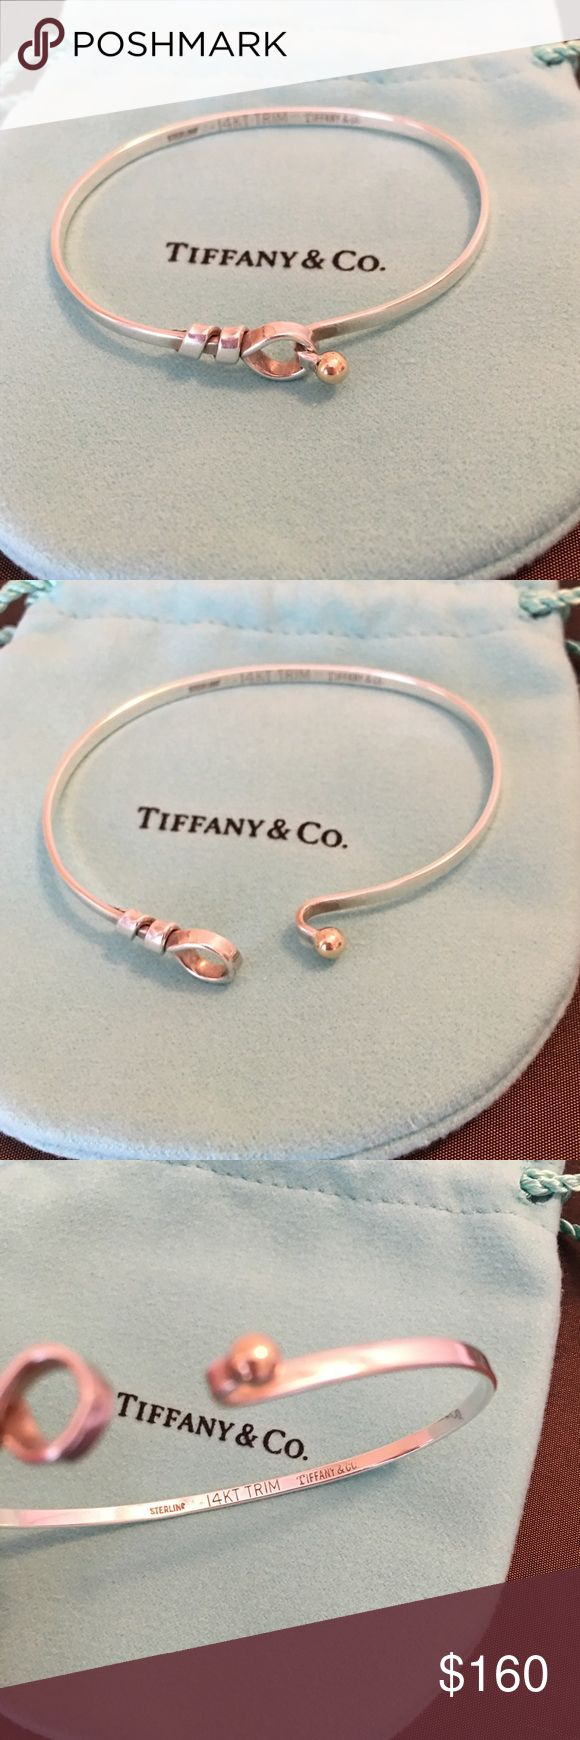 Tiffany & Co Hook and Eye Bangle Bracelet Authentic. 18K and 925 Sterling Silver. Pre-owned and worn but in good condition.  Comes with Tiffany bag. Cleaned at Tiffany San Diego in 2016. NO TRADES Tiffany & Co. Jewelry Bracelets